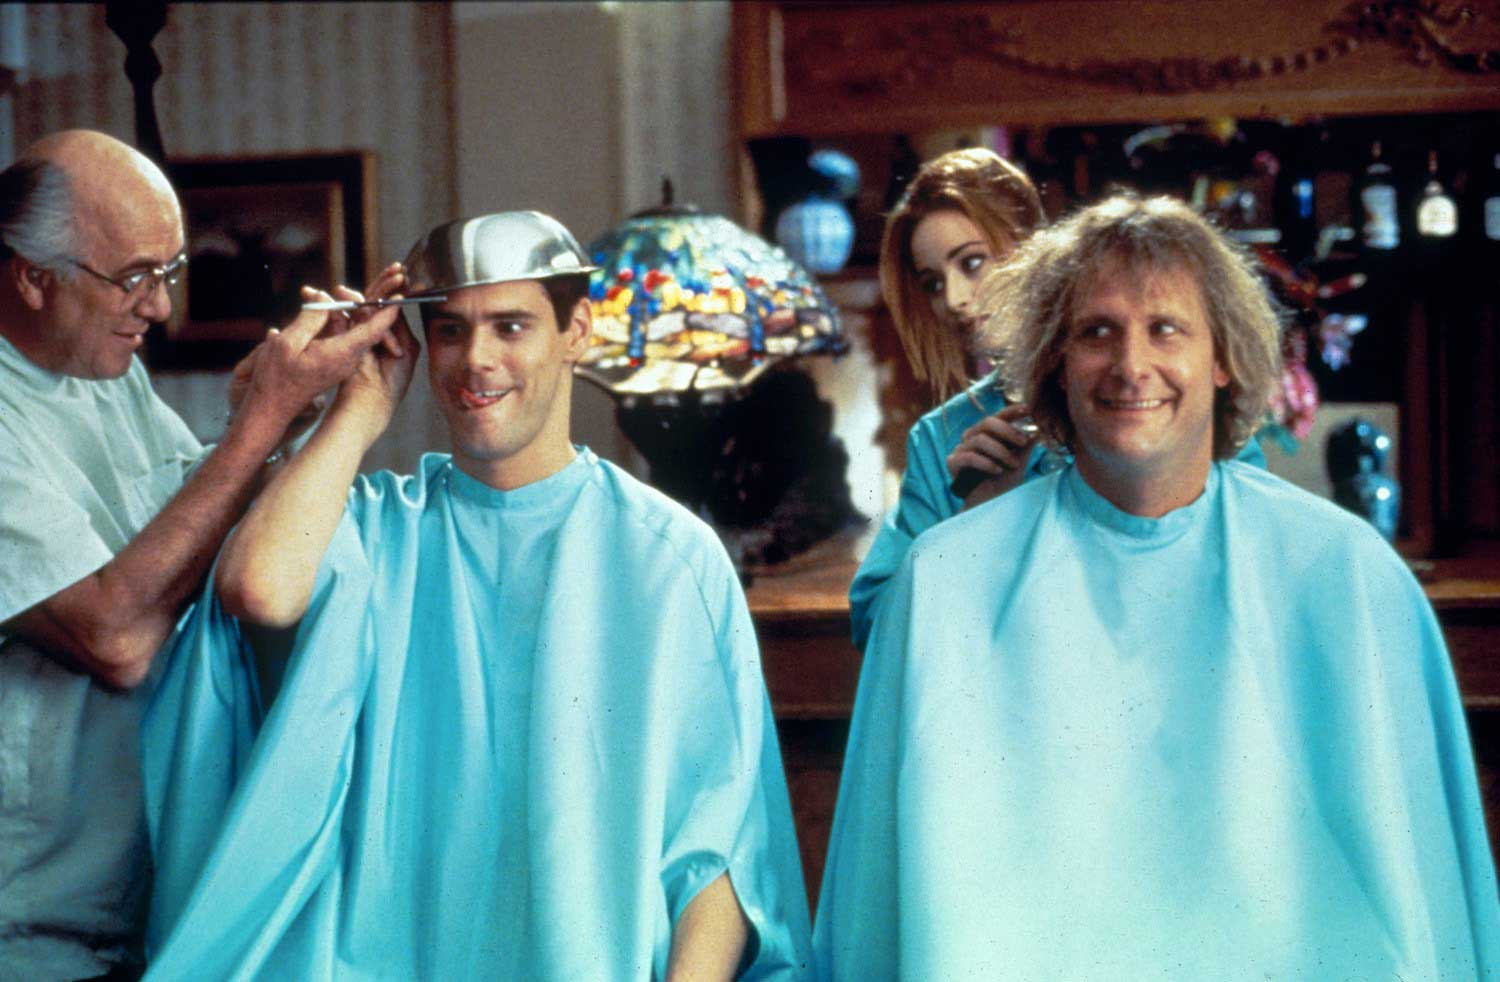 <strong>Dumb and Dumber</strong>                                    As Lloyd Christmas, Carrey played the incompetent best friend to Jeff Daniels' equally doltish Harry Dunne.